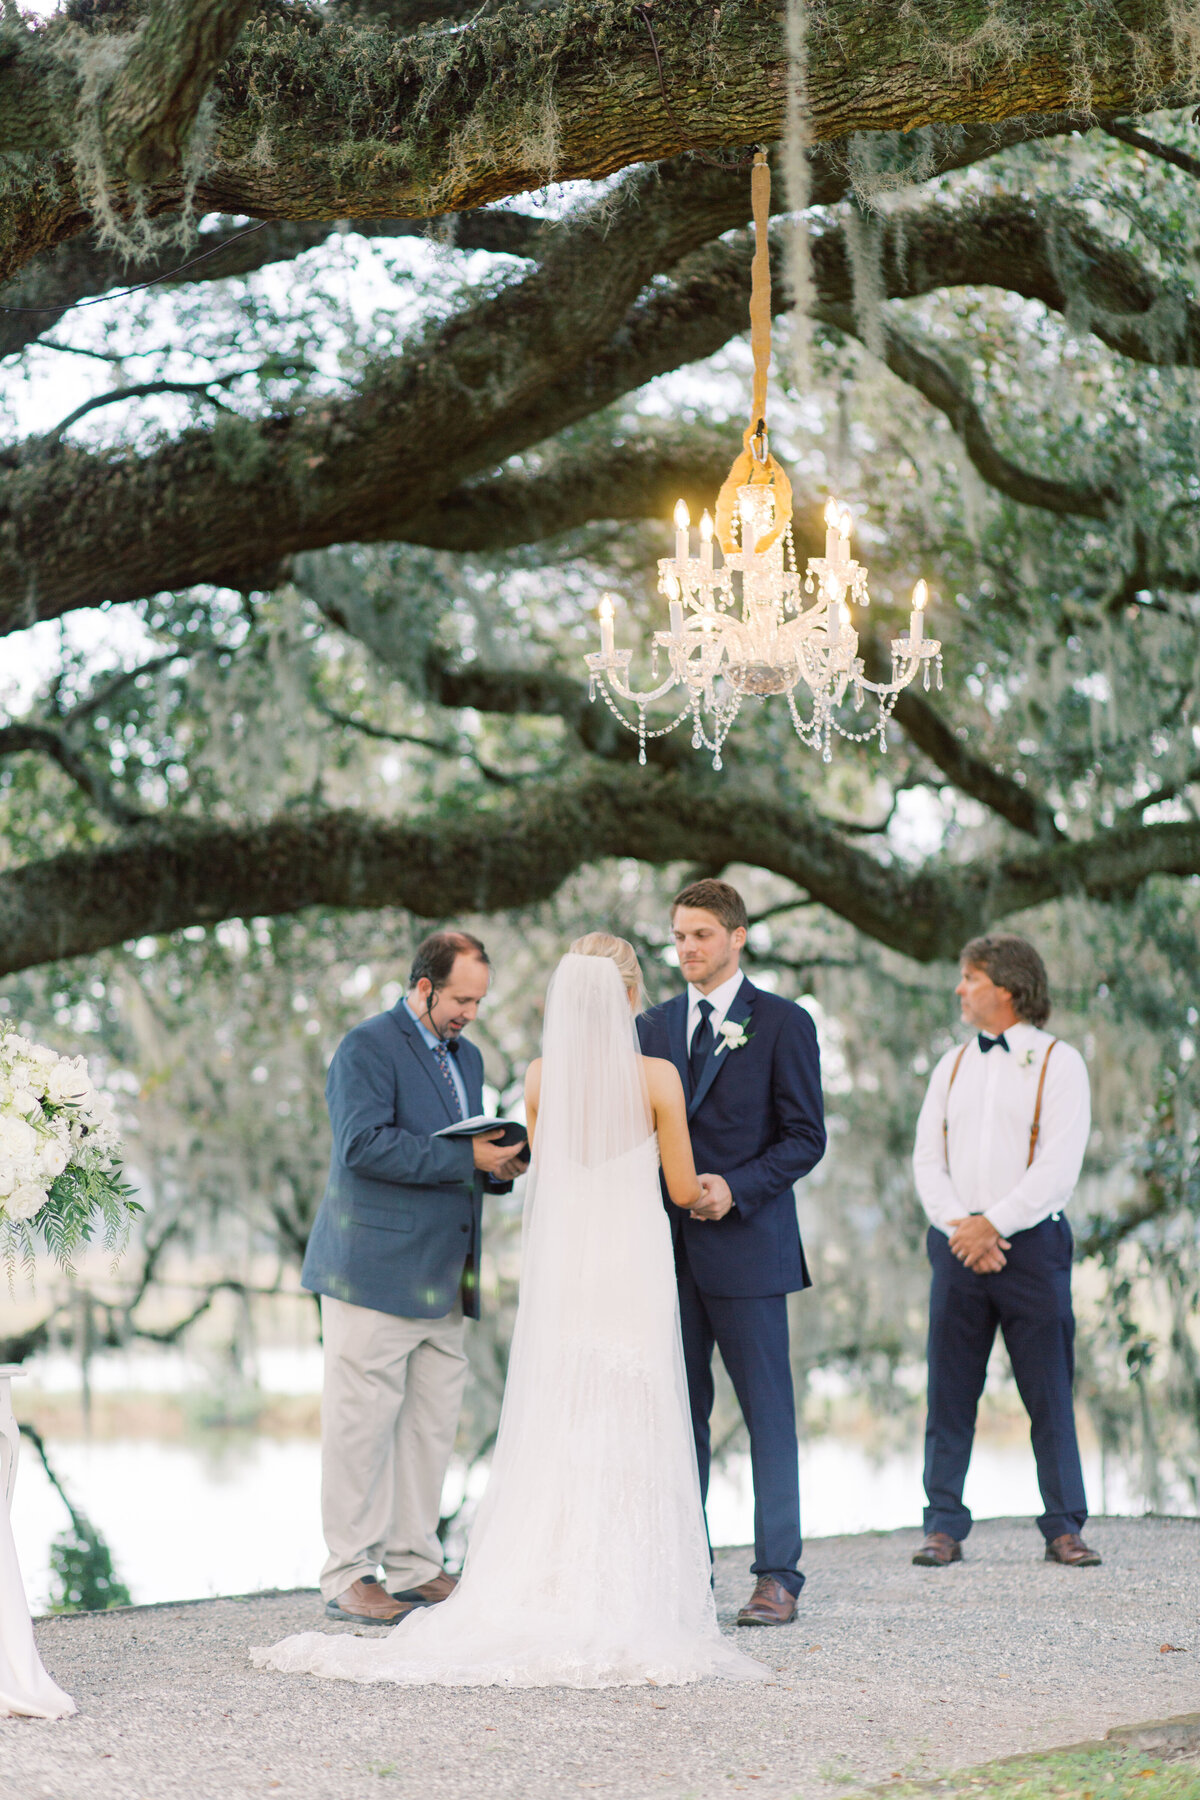 Melton_Wedding__Middleton_Place_Plantation_Charleston_South_Carolina_Jacksonville_Florida_Devon_Donnahoo_Photography__0612